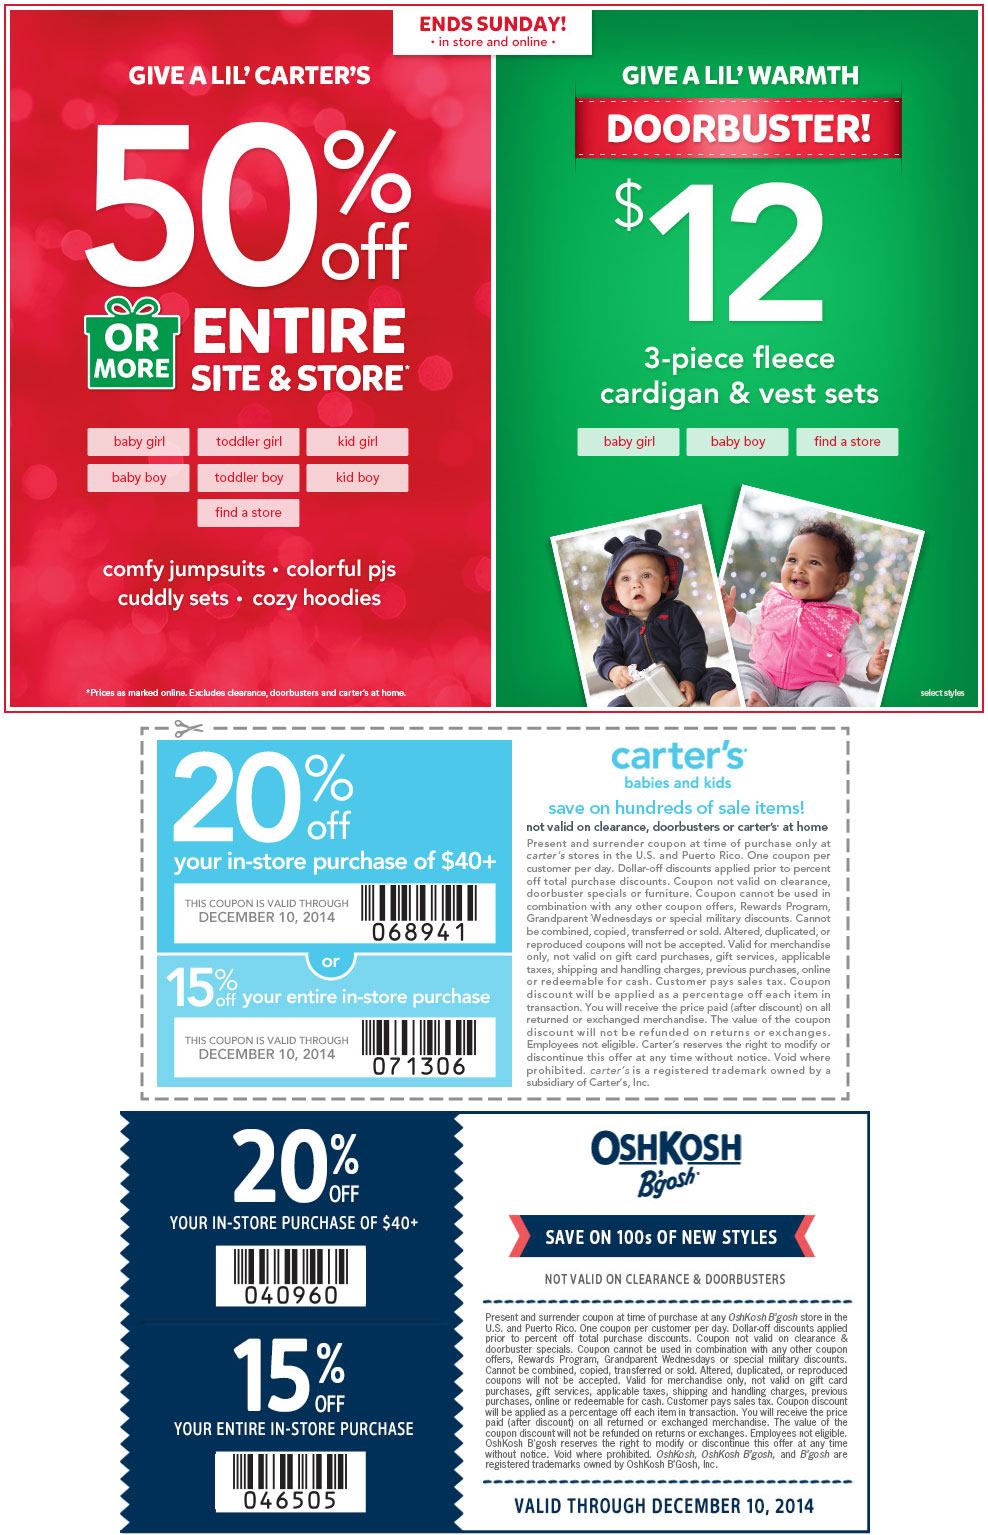 Carters Coupon March 2018 50% off everything + 20% off $40 & more at Carters & OshKosh Bgosh, ditto online